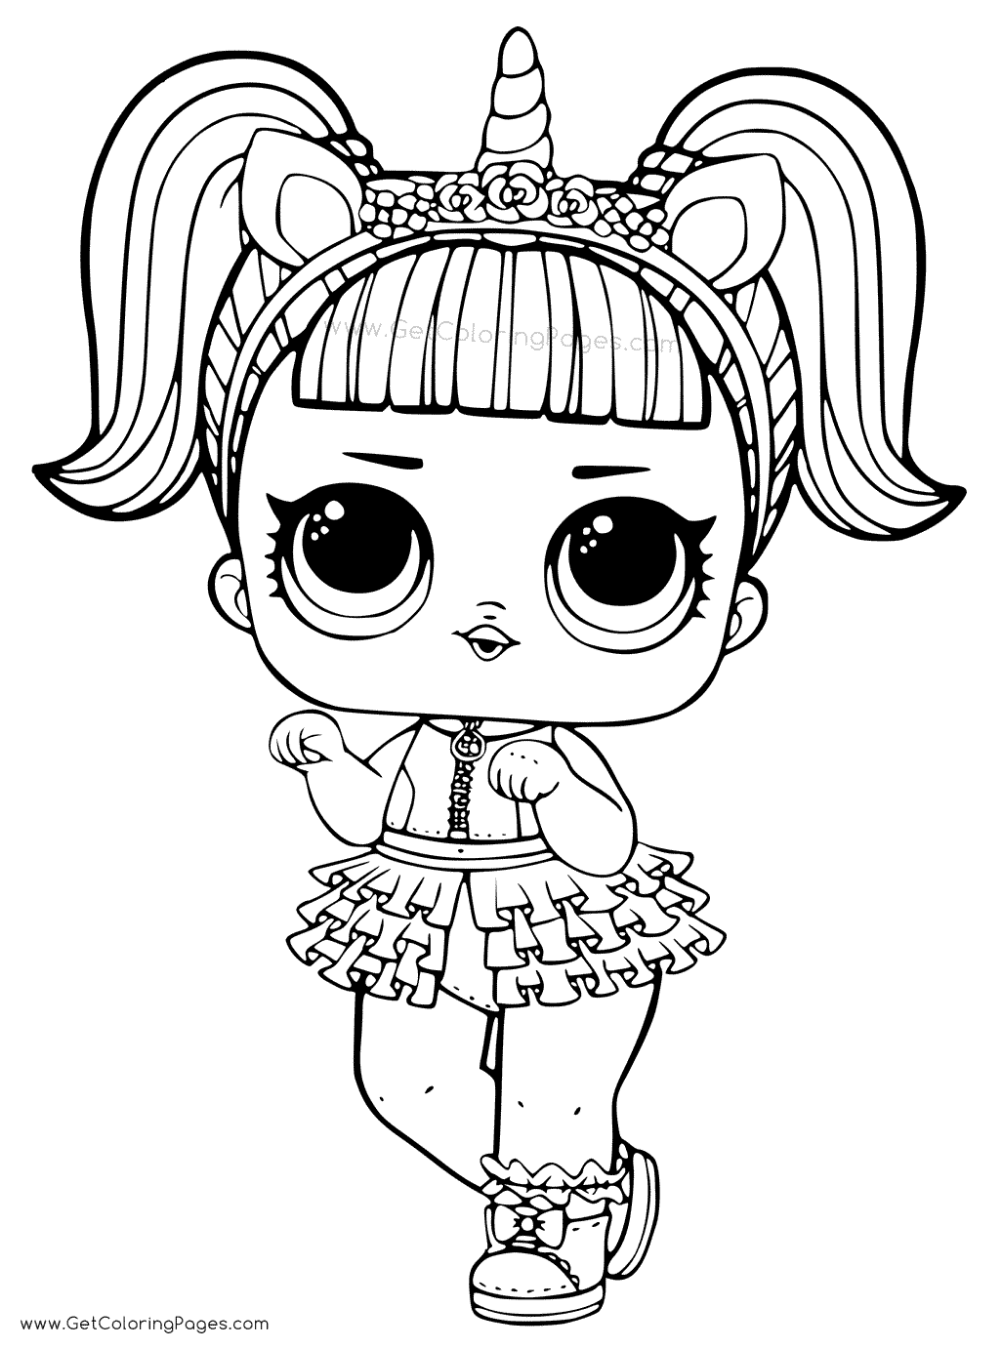 Get Coloring Pages Free Coloring Pages For Kids And Adults Unicorn Coloring Pages Mermaid Coloring Pages Cool Coloring Pages